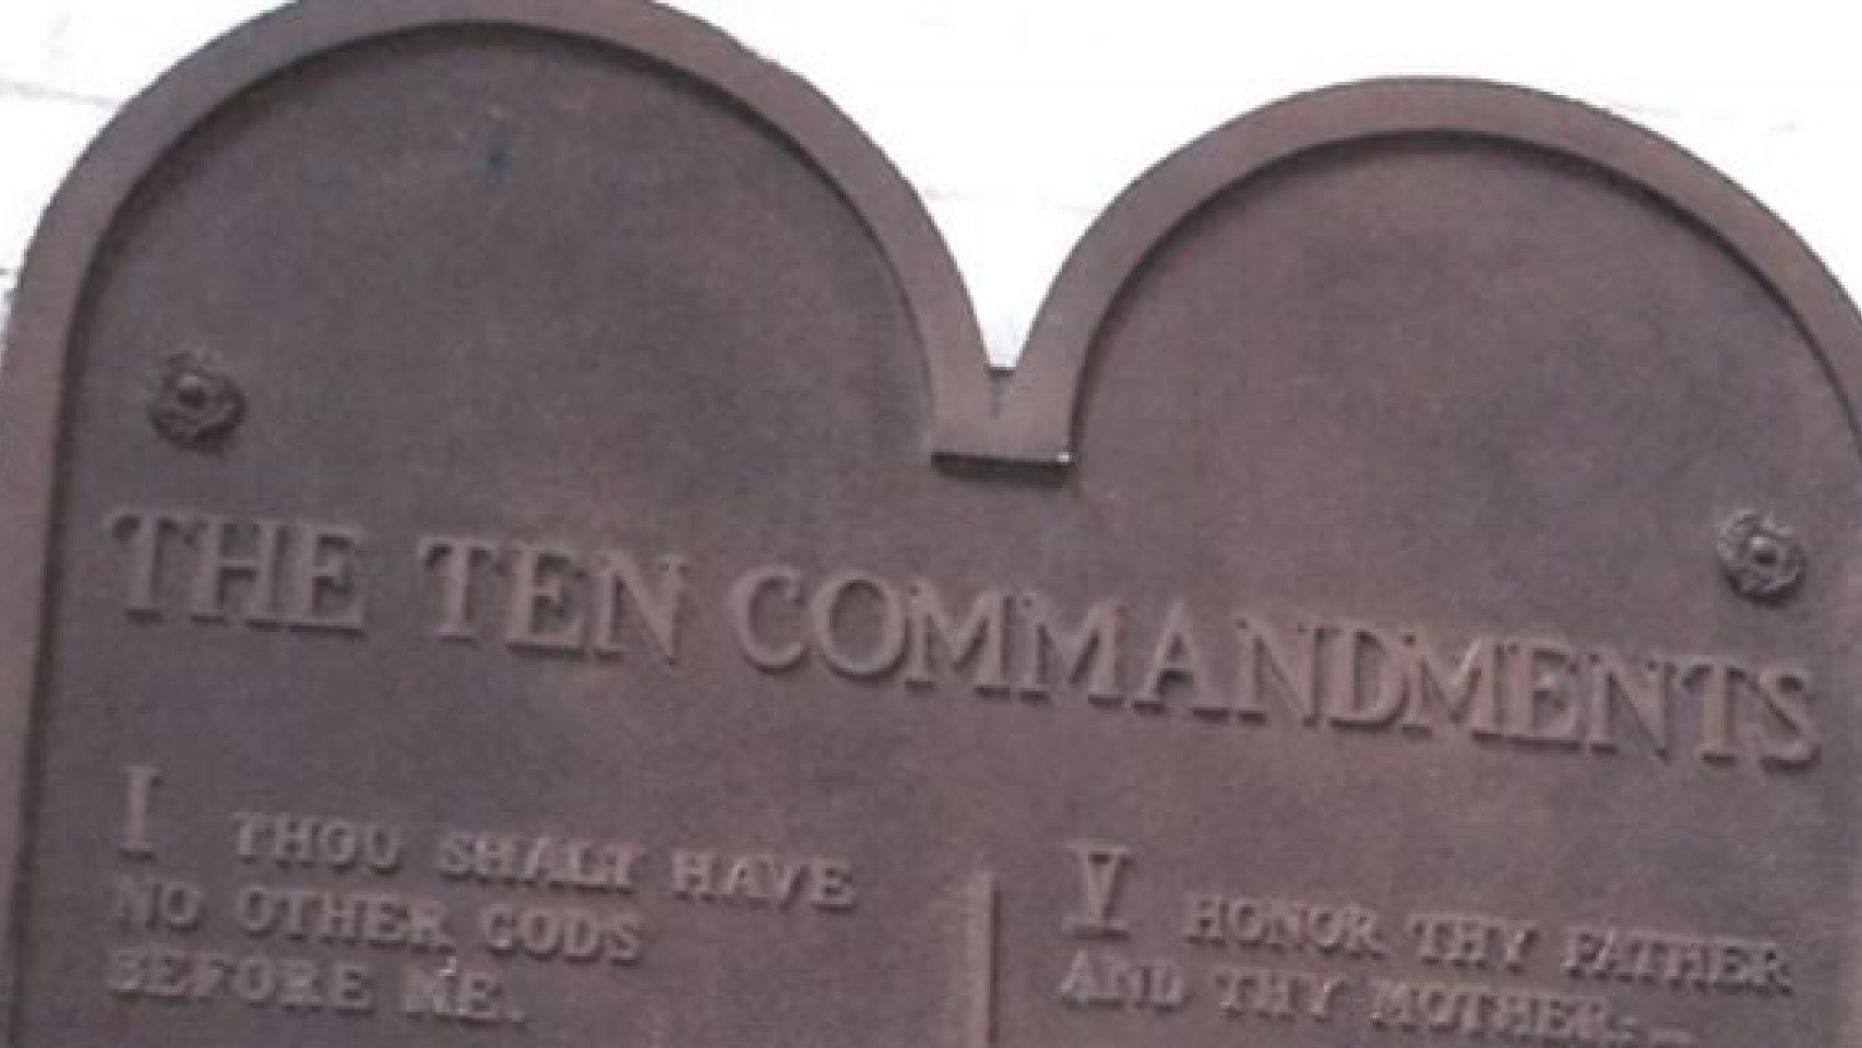 The New Philadelphia City Schools in Ohio removed a 92-year-old Ten Commandments plaque after the Freedom From Religion Foundation complained.